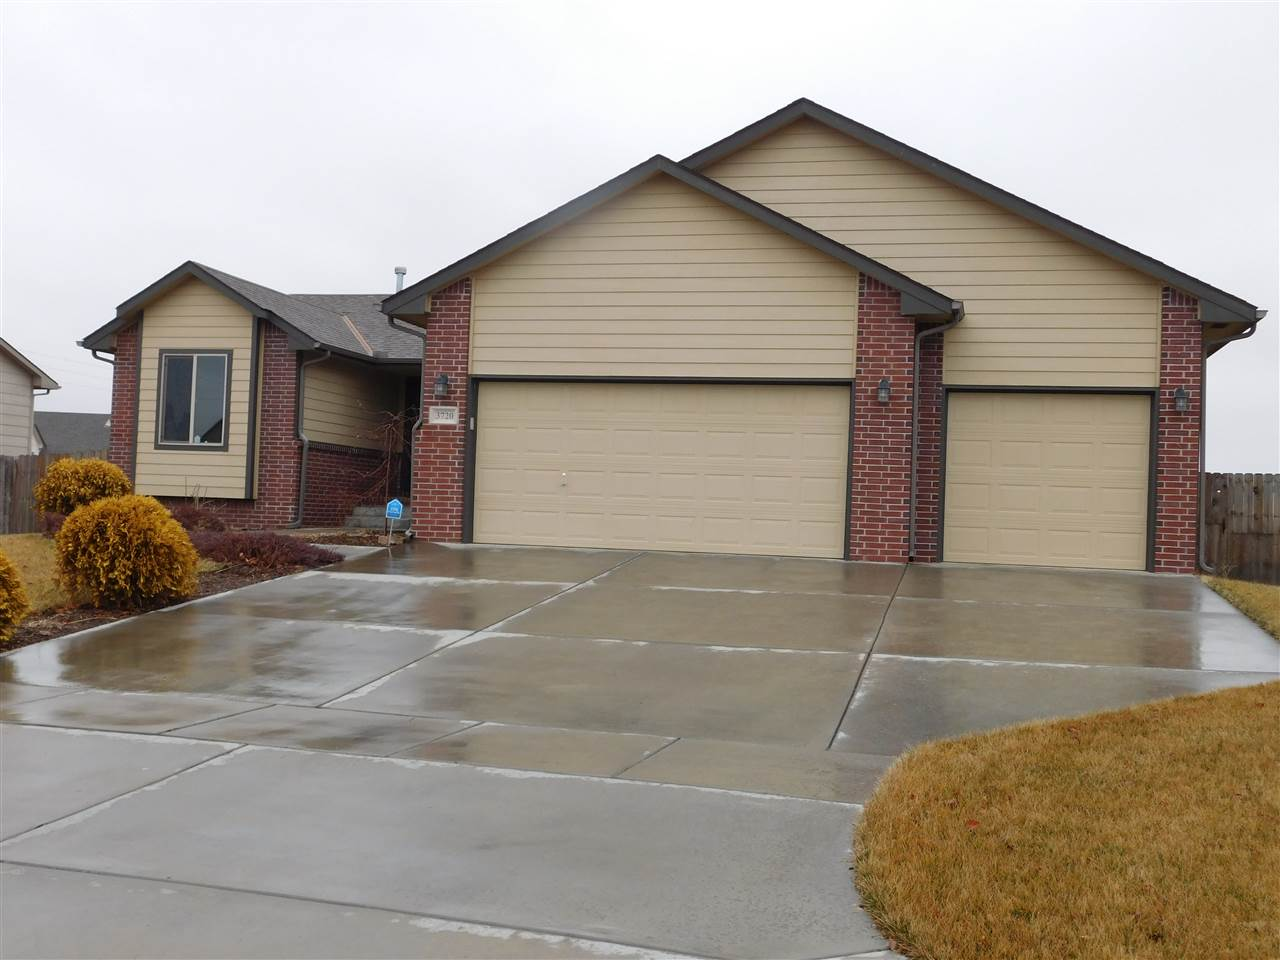 If you are looking to move to the Maize school district look no further! This home scores high with